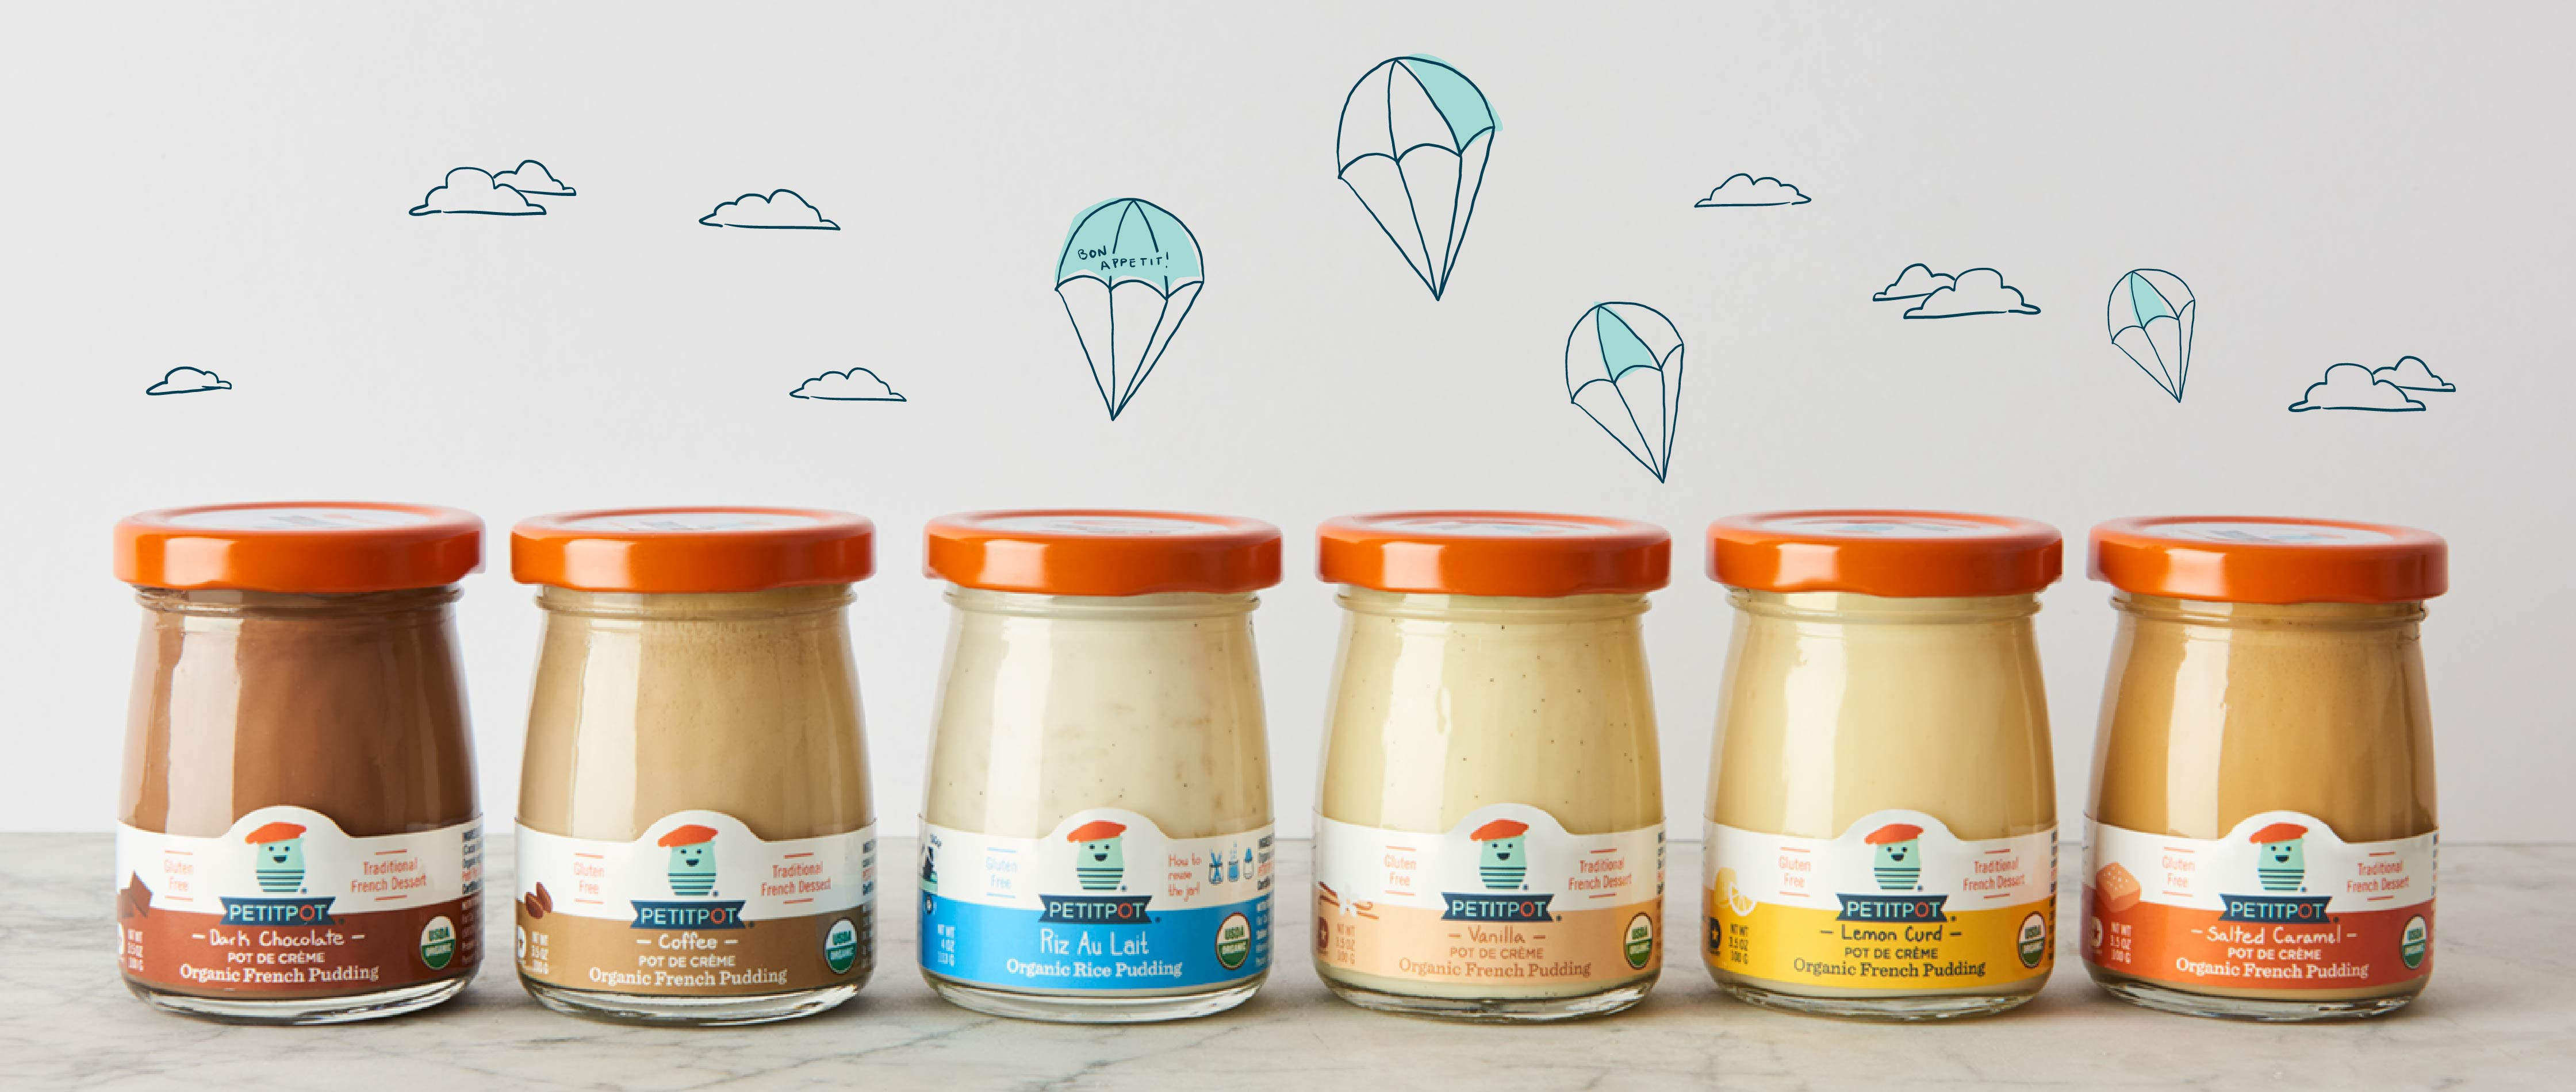 label and product photography for Petitpot